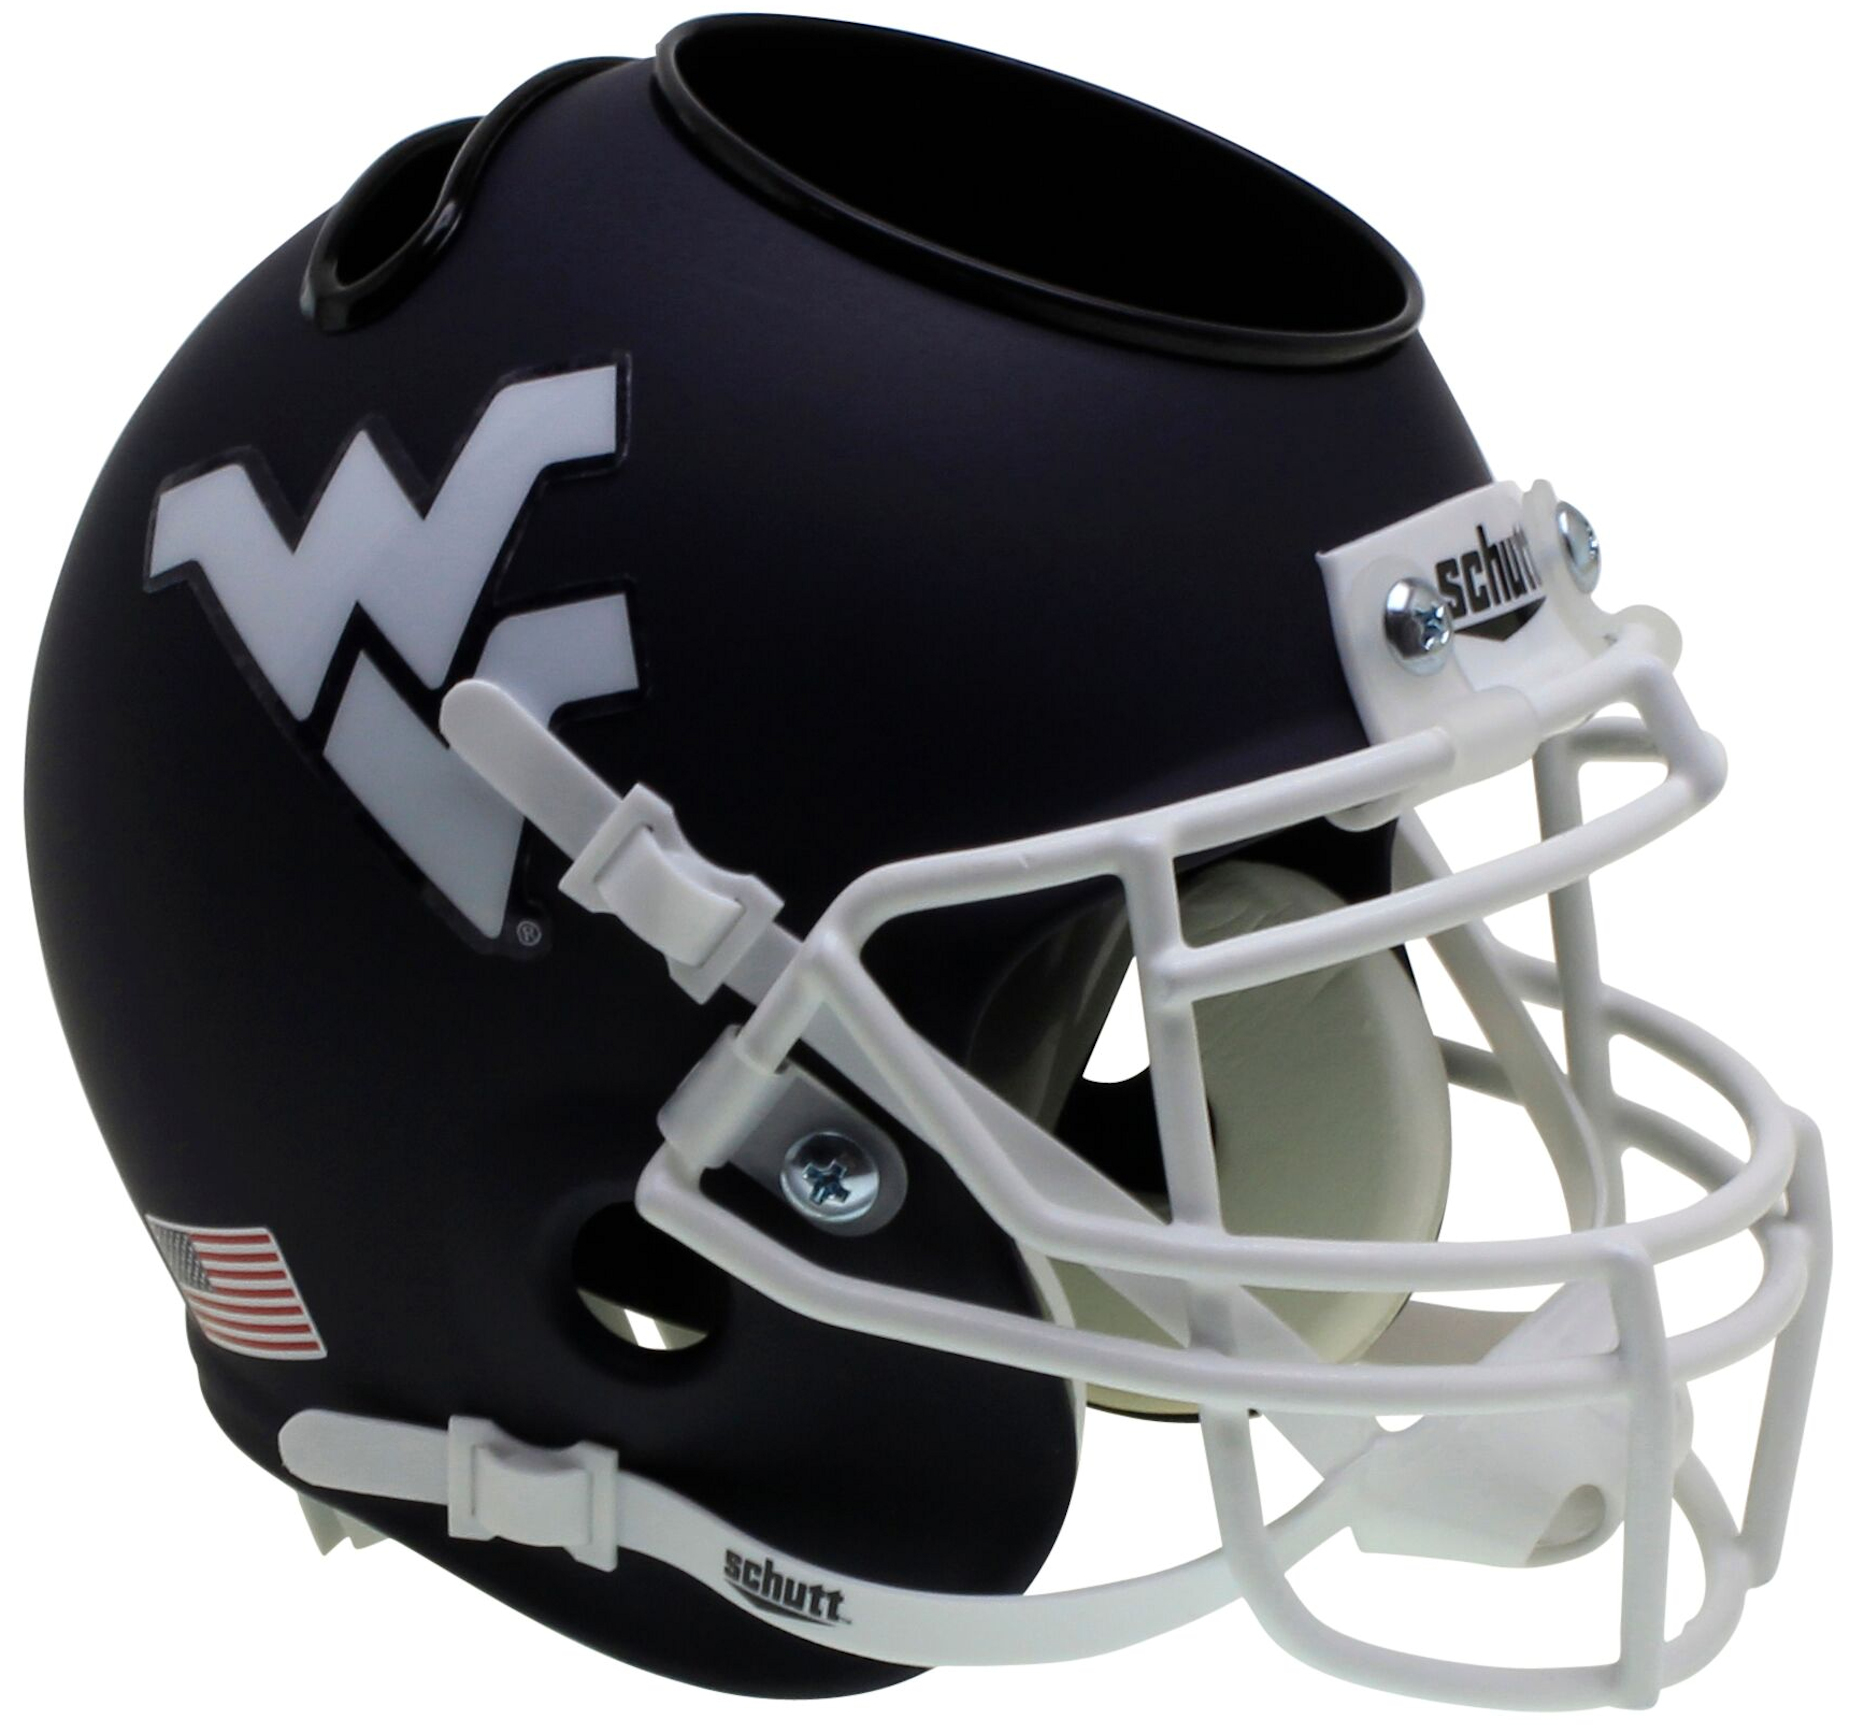 West Virginia Mountaineers Miniature Football Helmet Desk Caddy <B>Matte Navy</B>